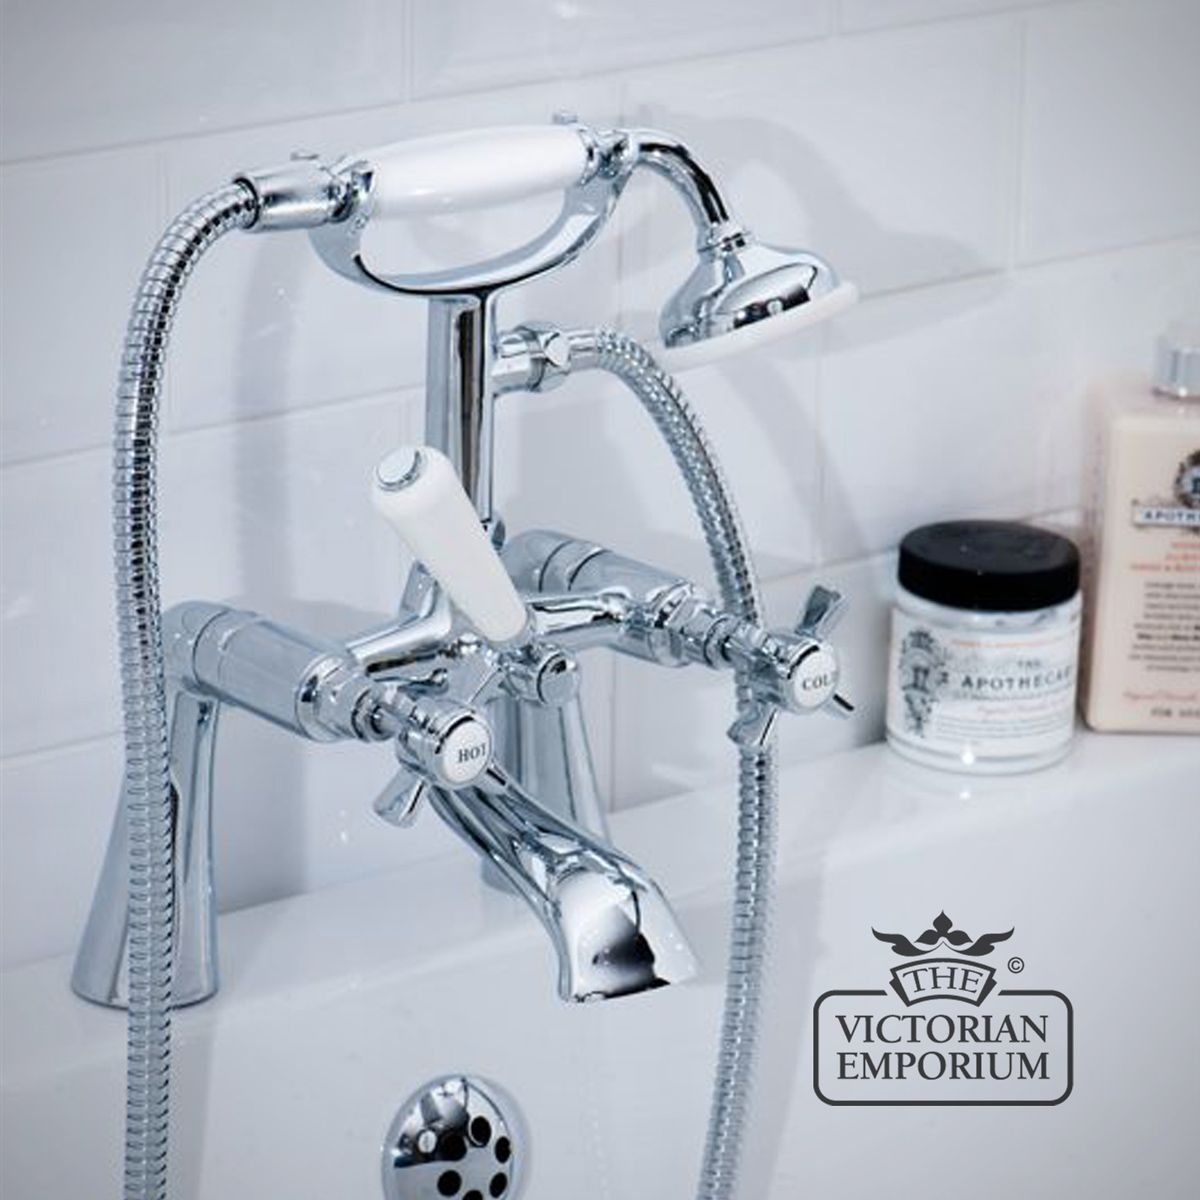 Covent Garden Cranked Bath Shower Mixer Tap | Bath taps and showers